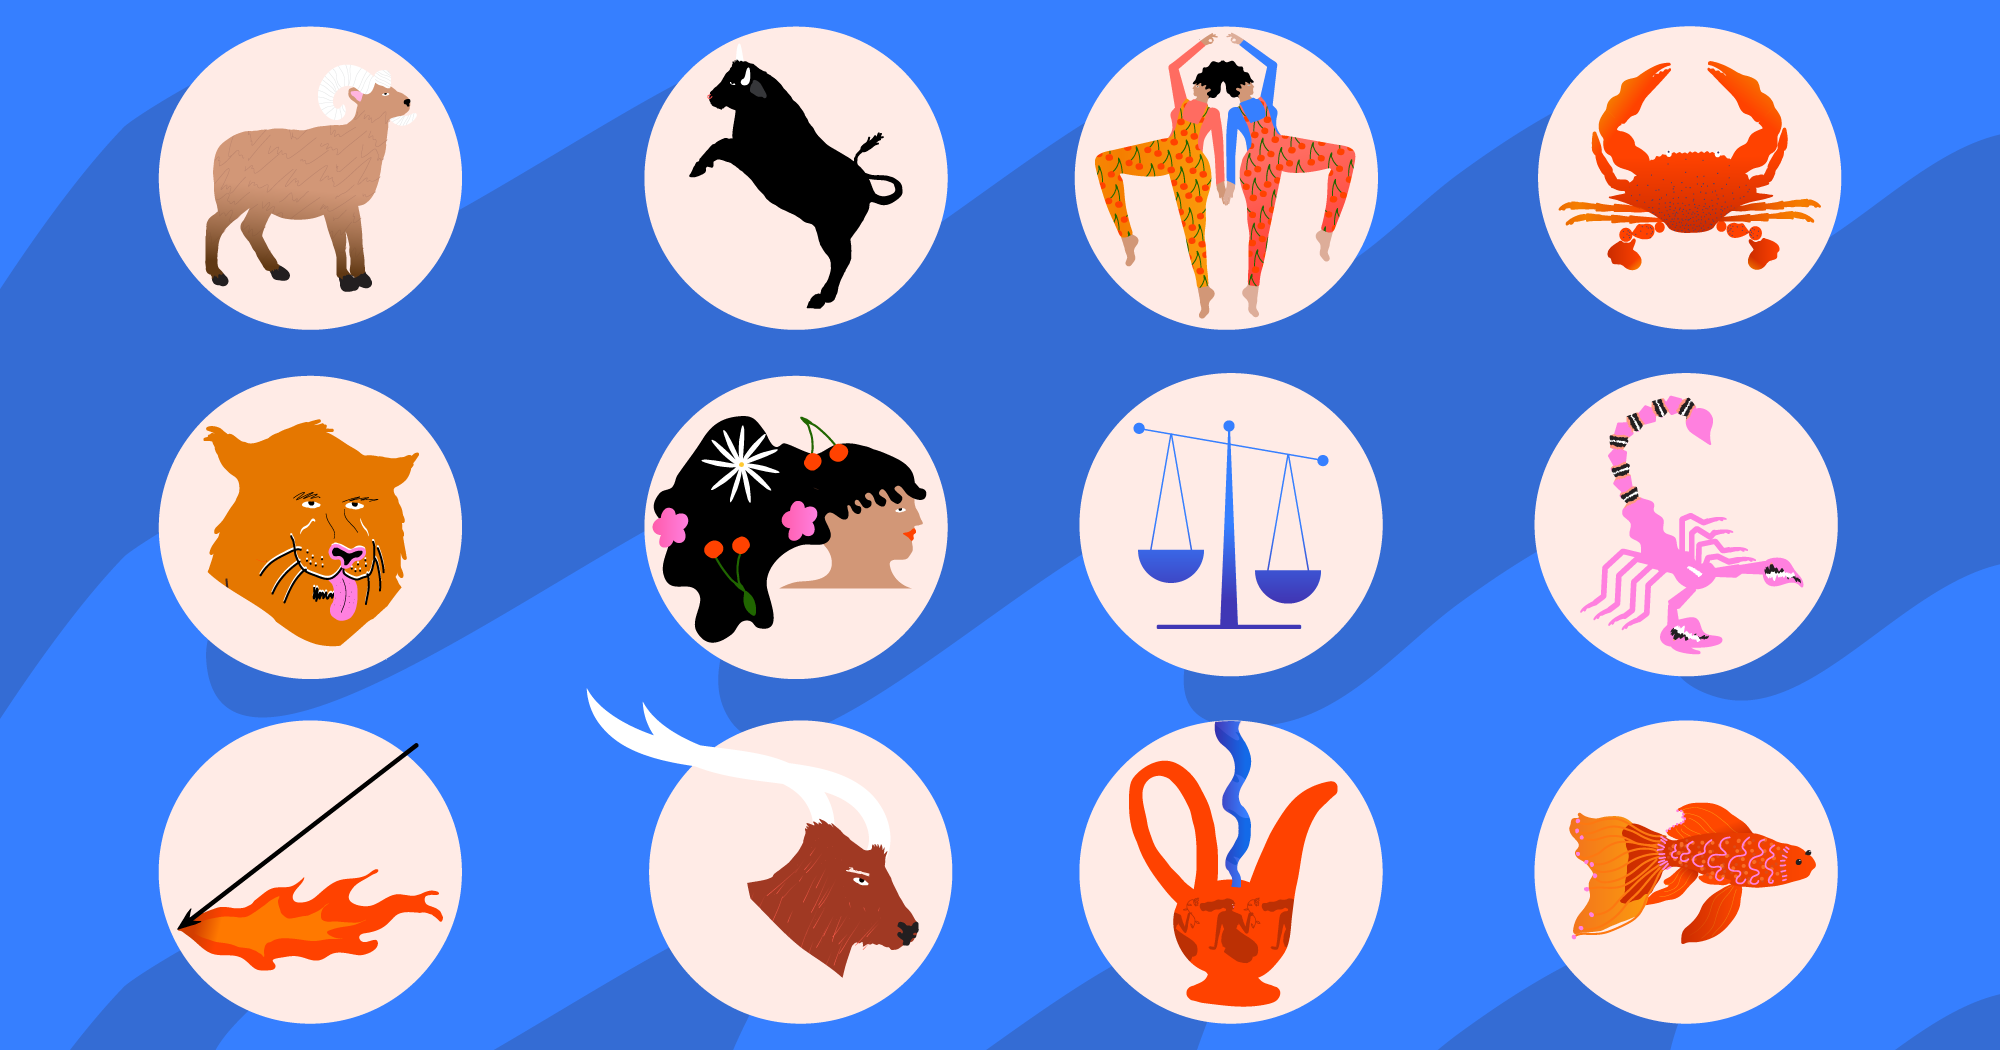 december 28 horoscope 2019 aries